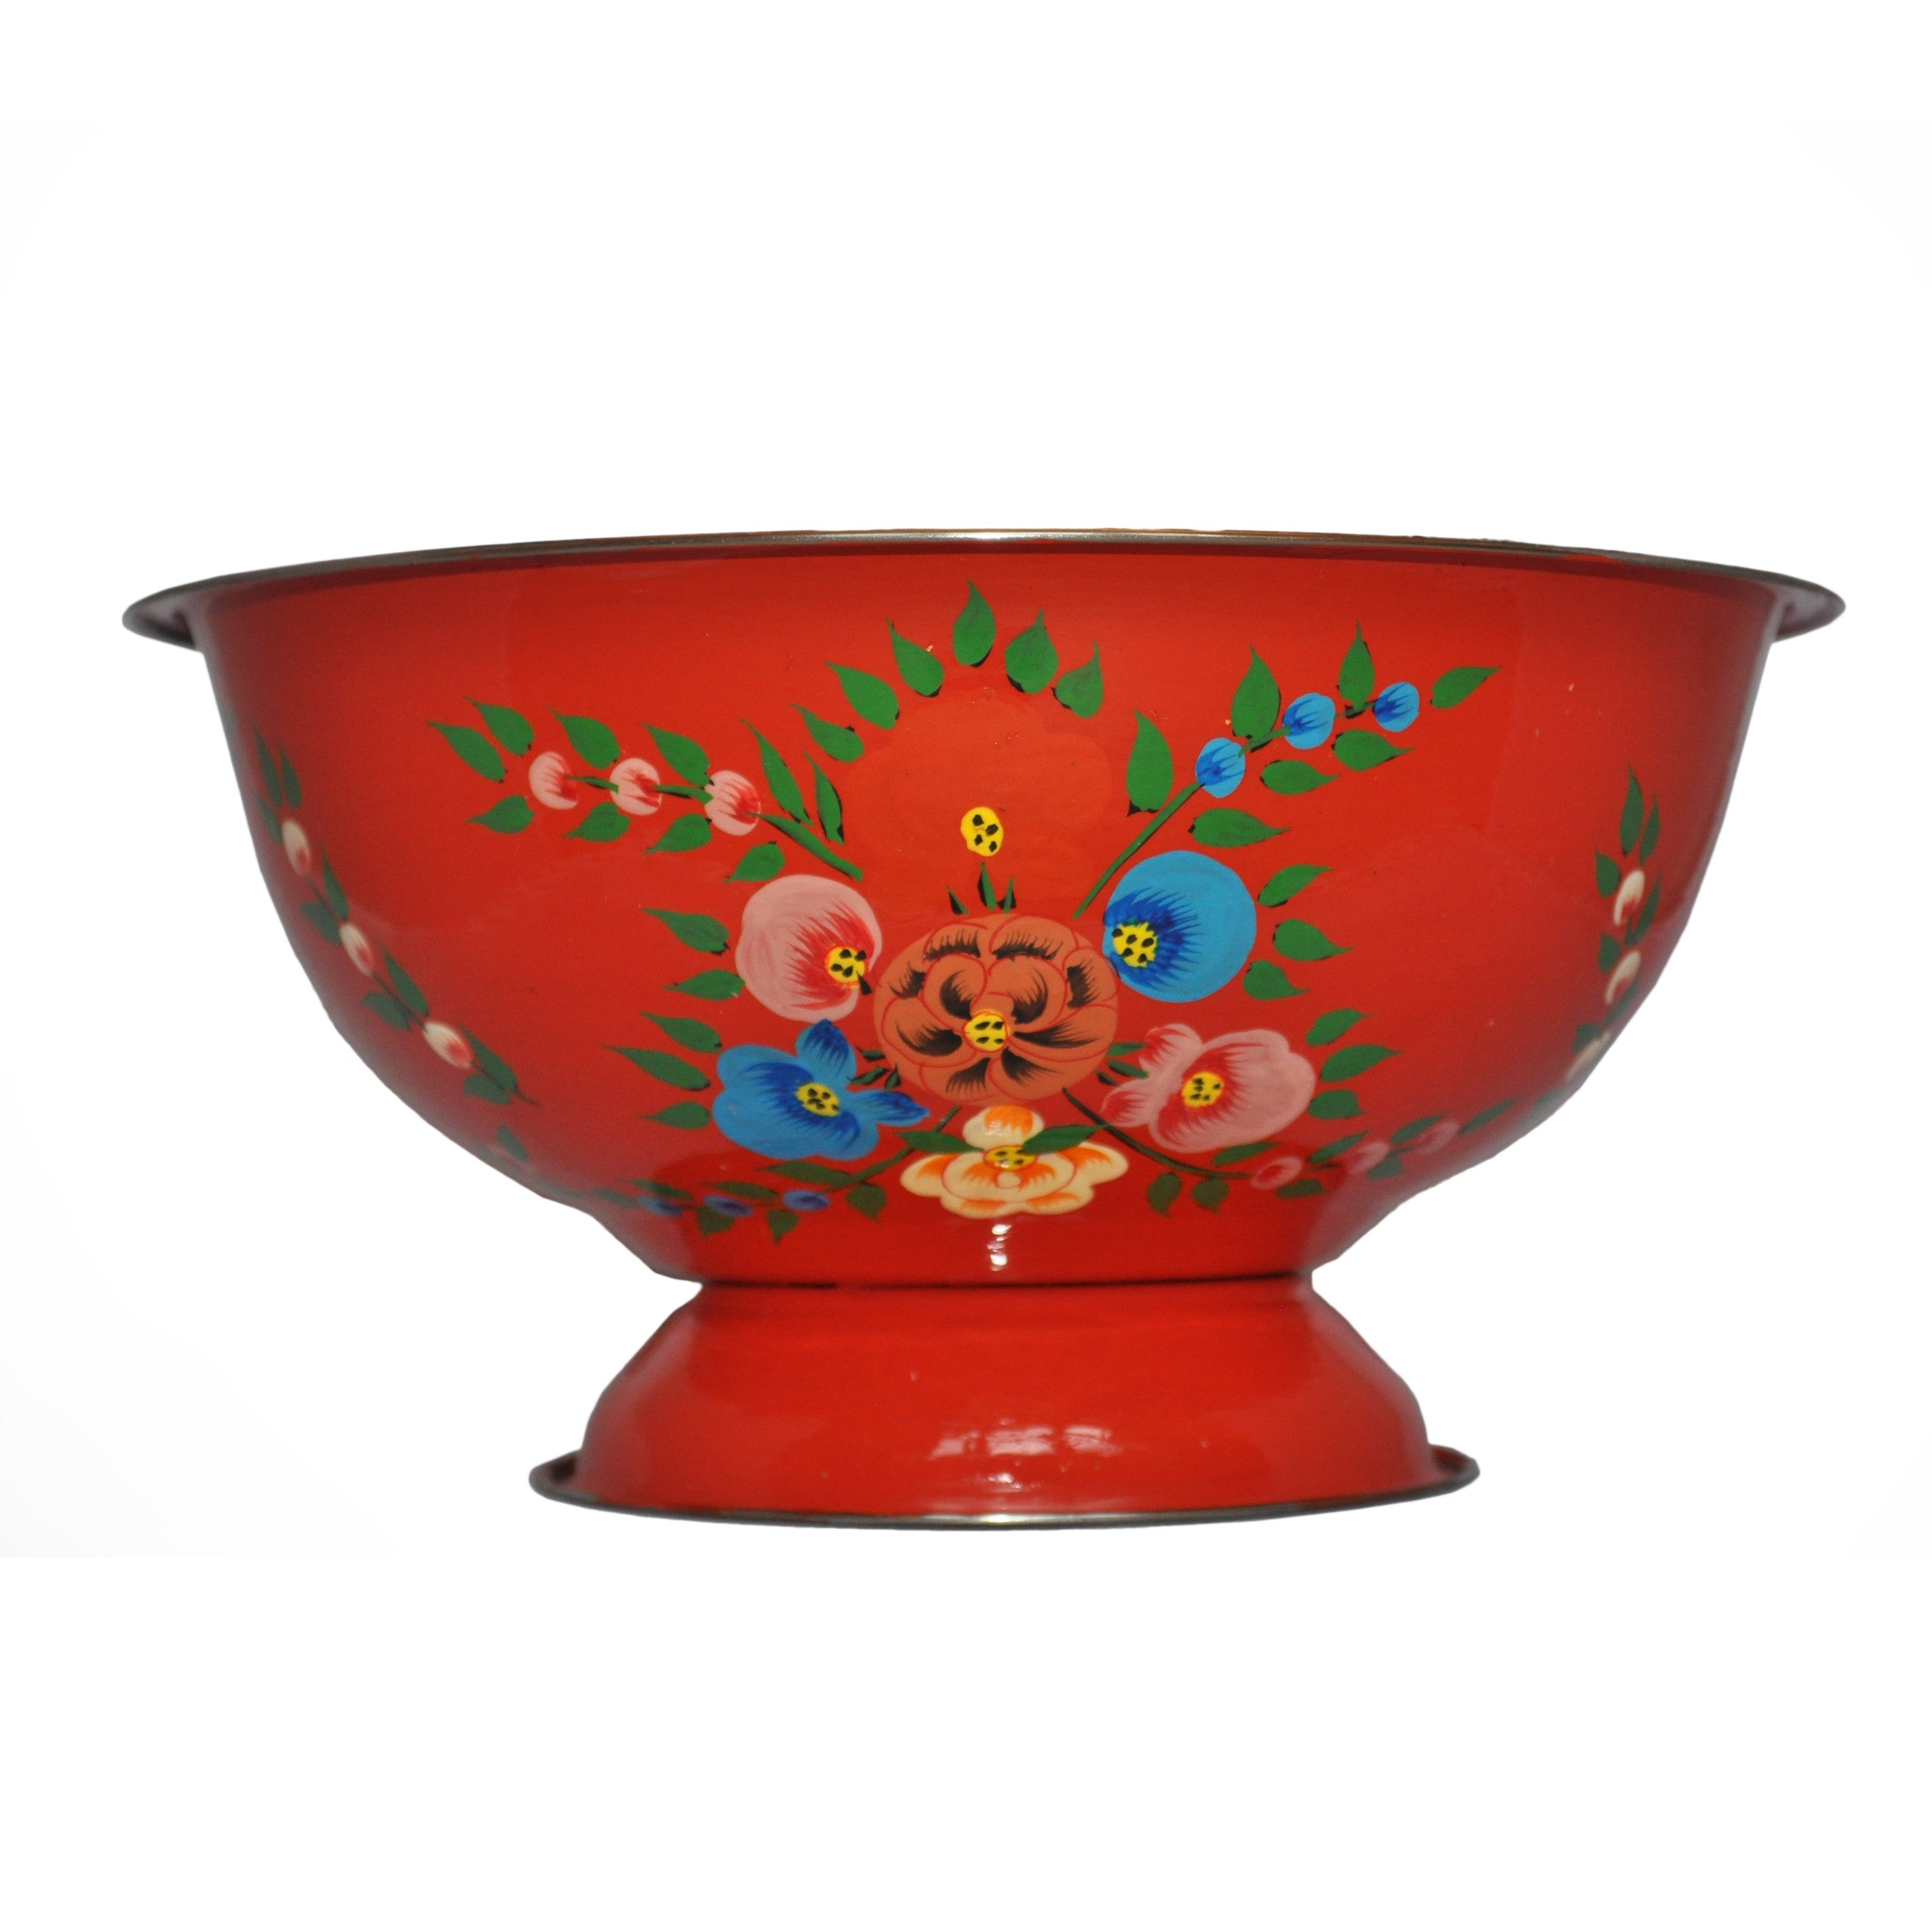 Bright Red Enamel Bowl With Floral Splash by Jasmine White on OOSTOR.com